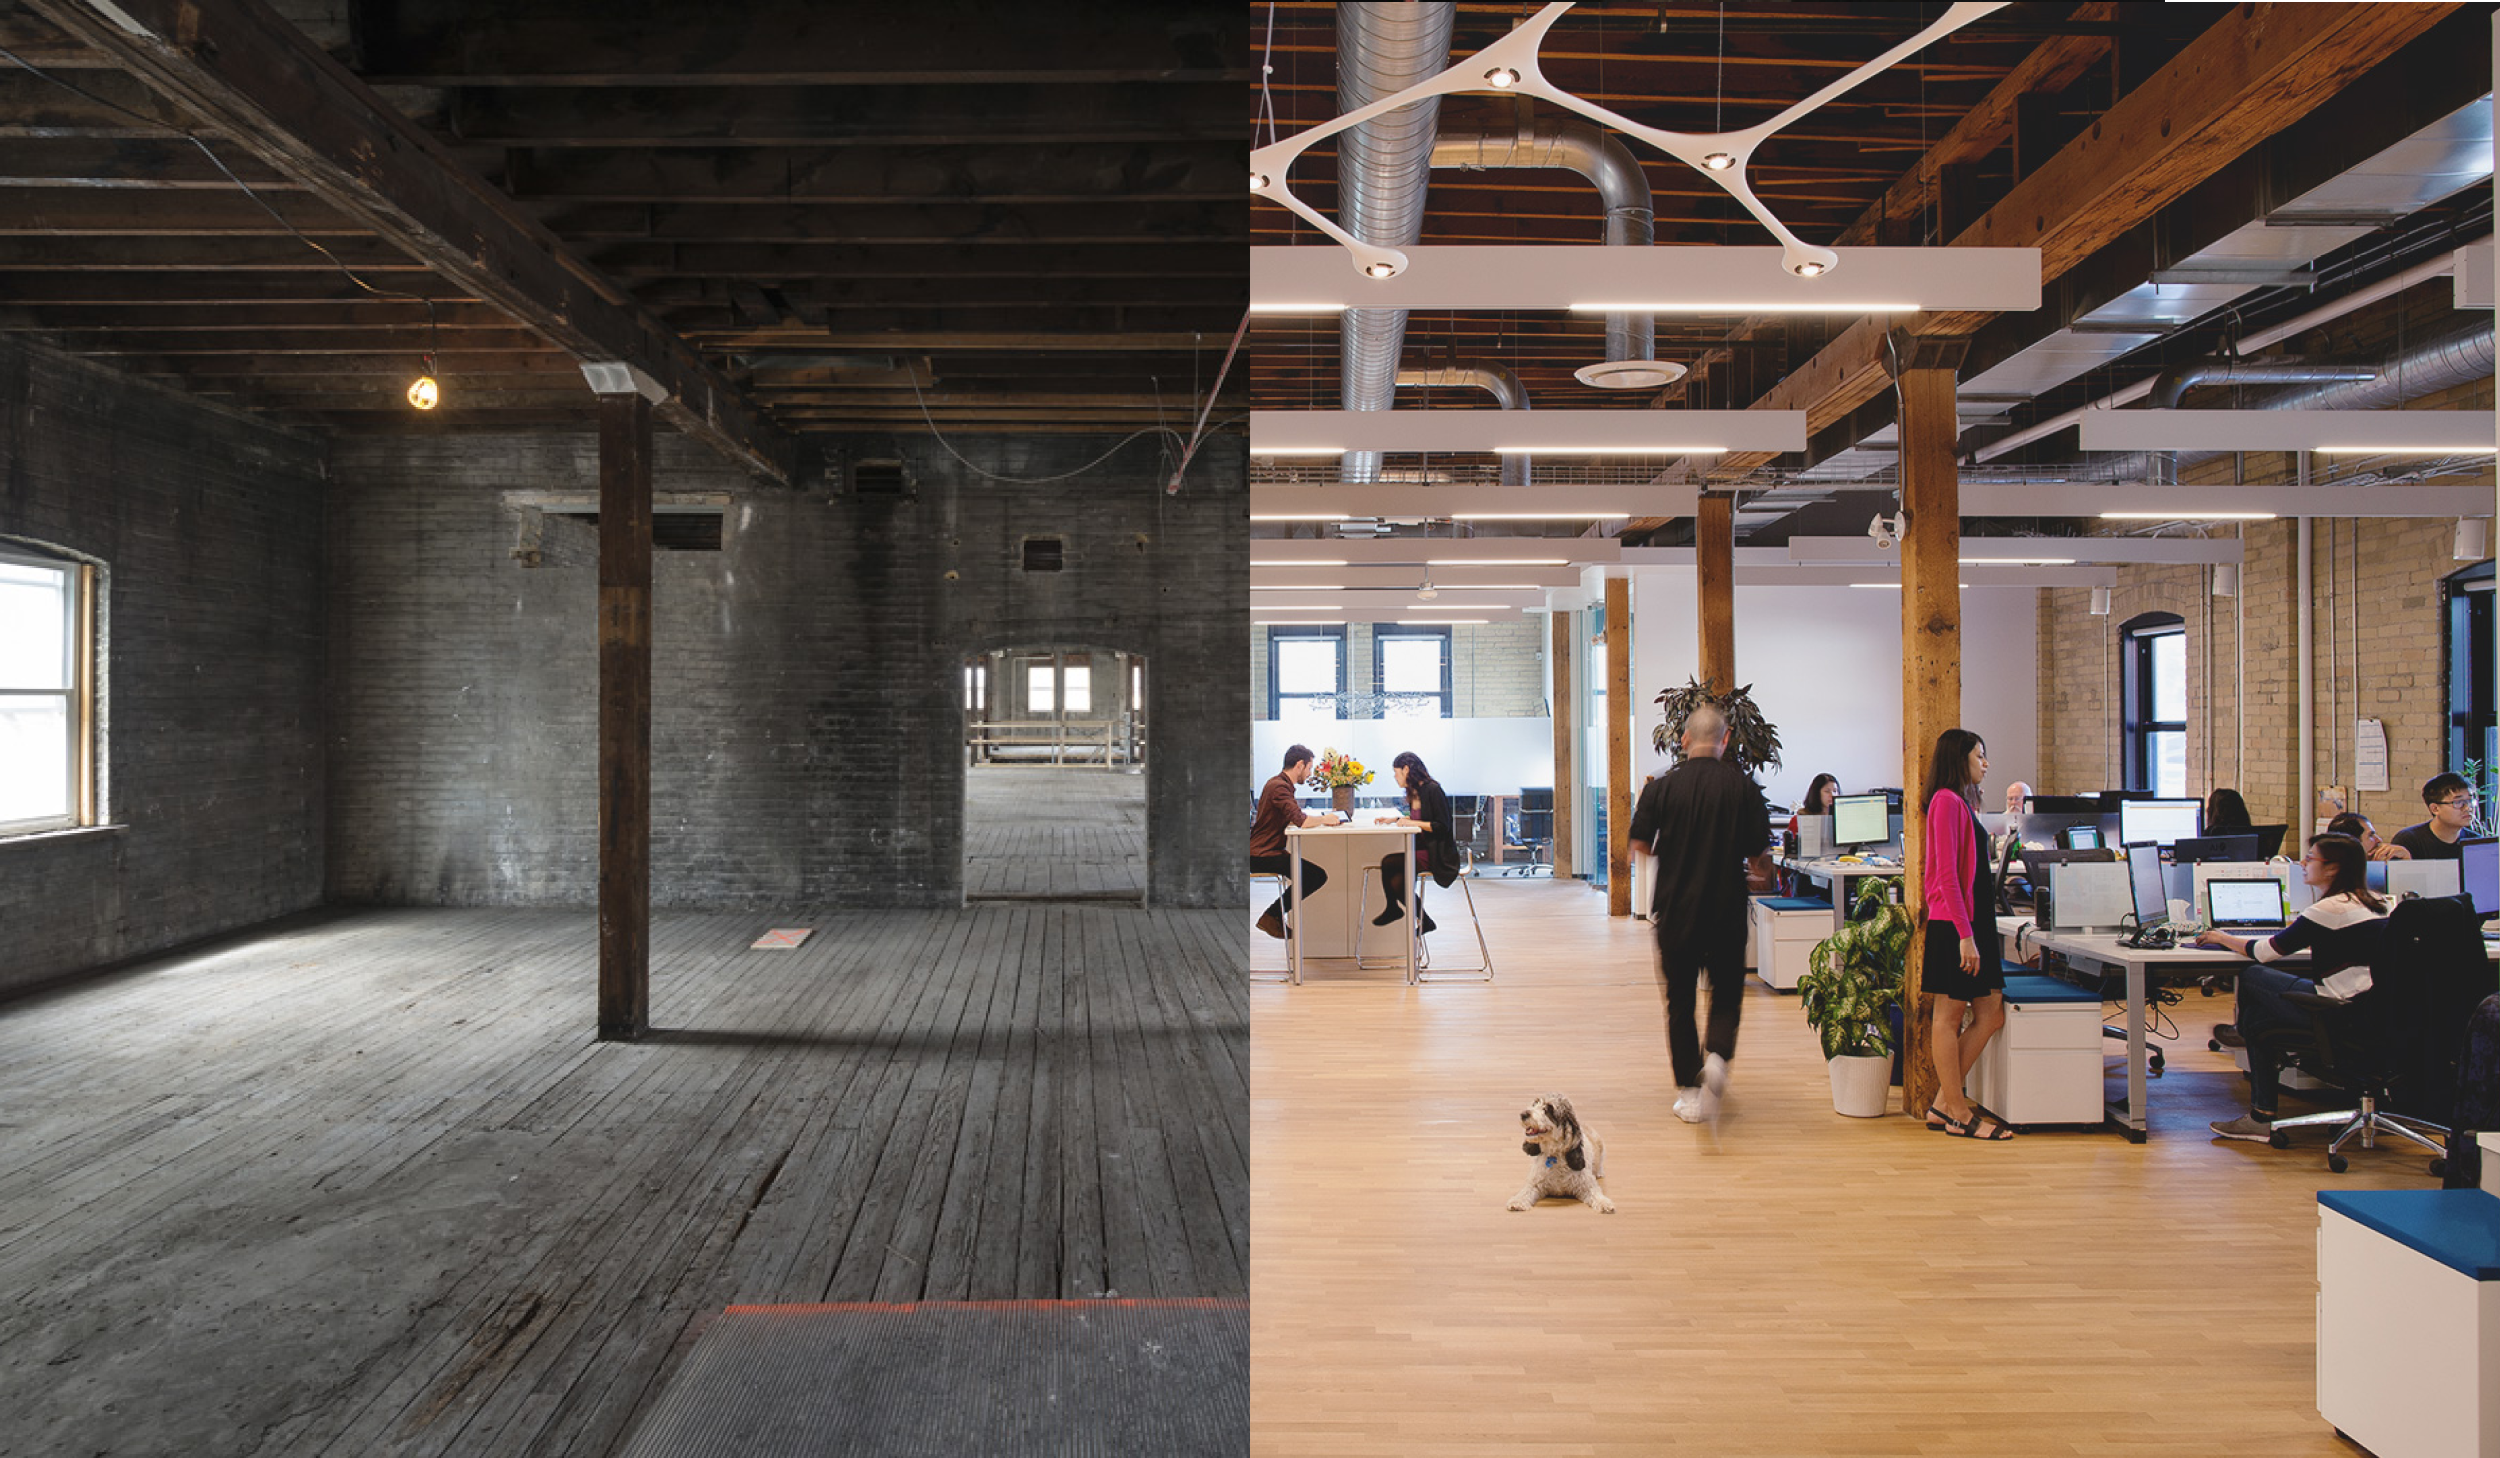 split screen image with stripped down empty brick and beam factory interior during restoration construction on the left and the same floor completed and in use as a modern day office